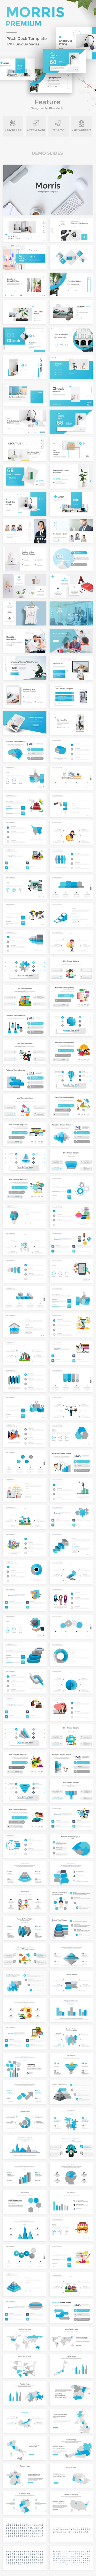 Morris Creative Powerpoint Template - Creative PowerPoint Templates